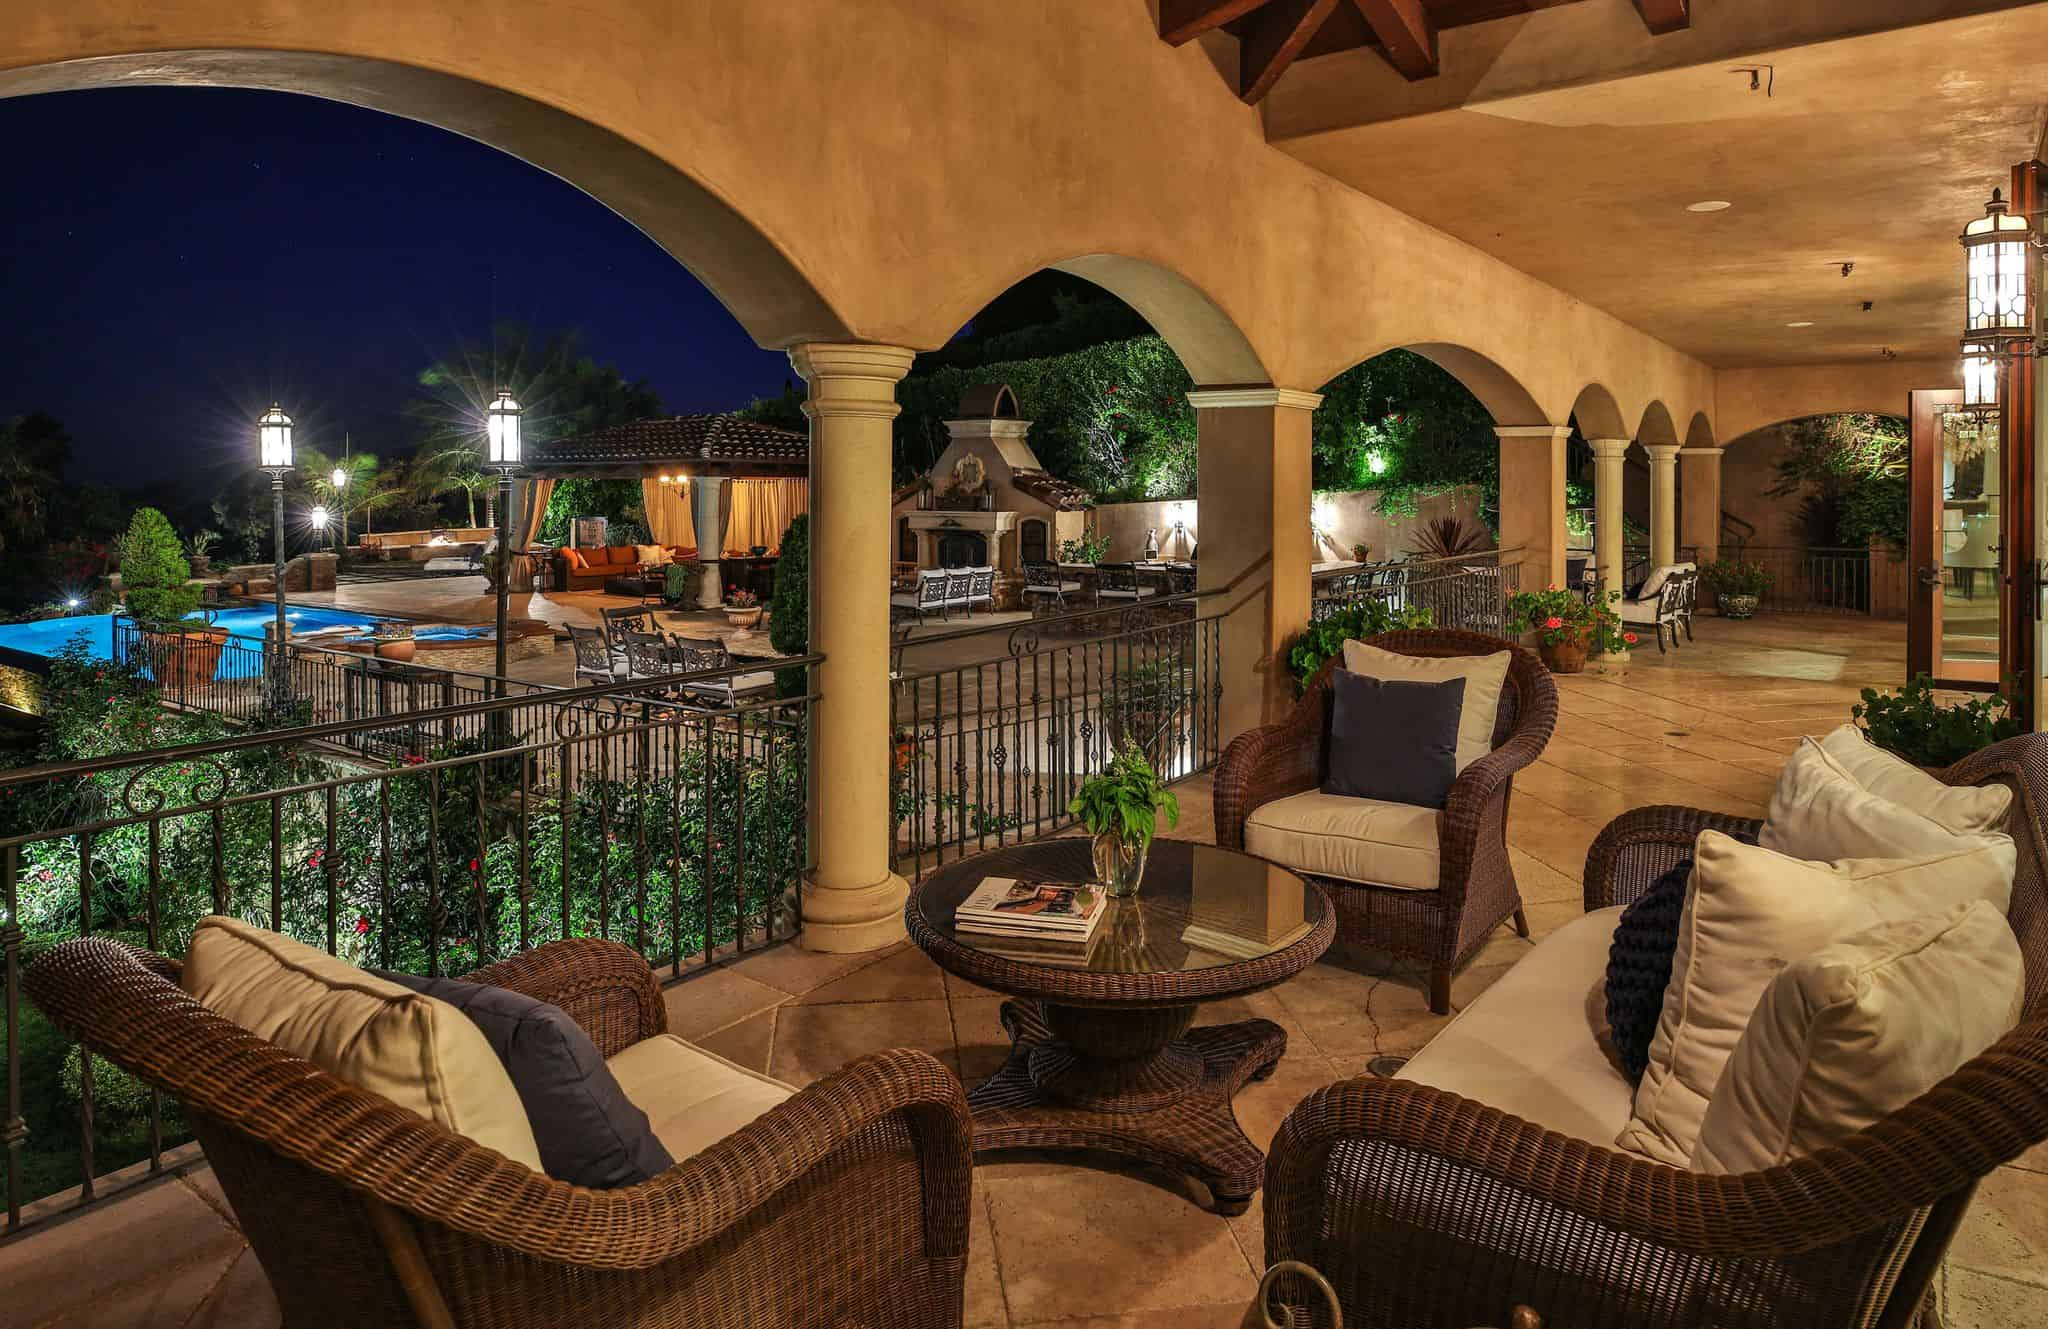 Night time view of the mansion's balcony patio overlooking the beautiful backyard.